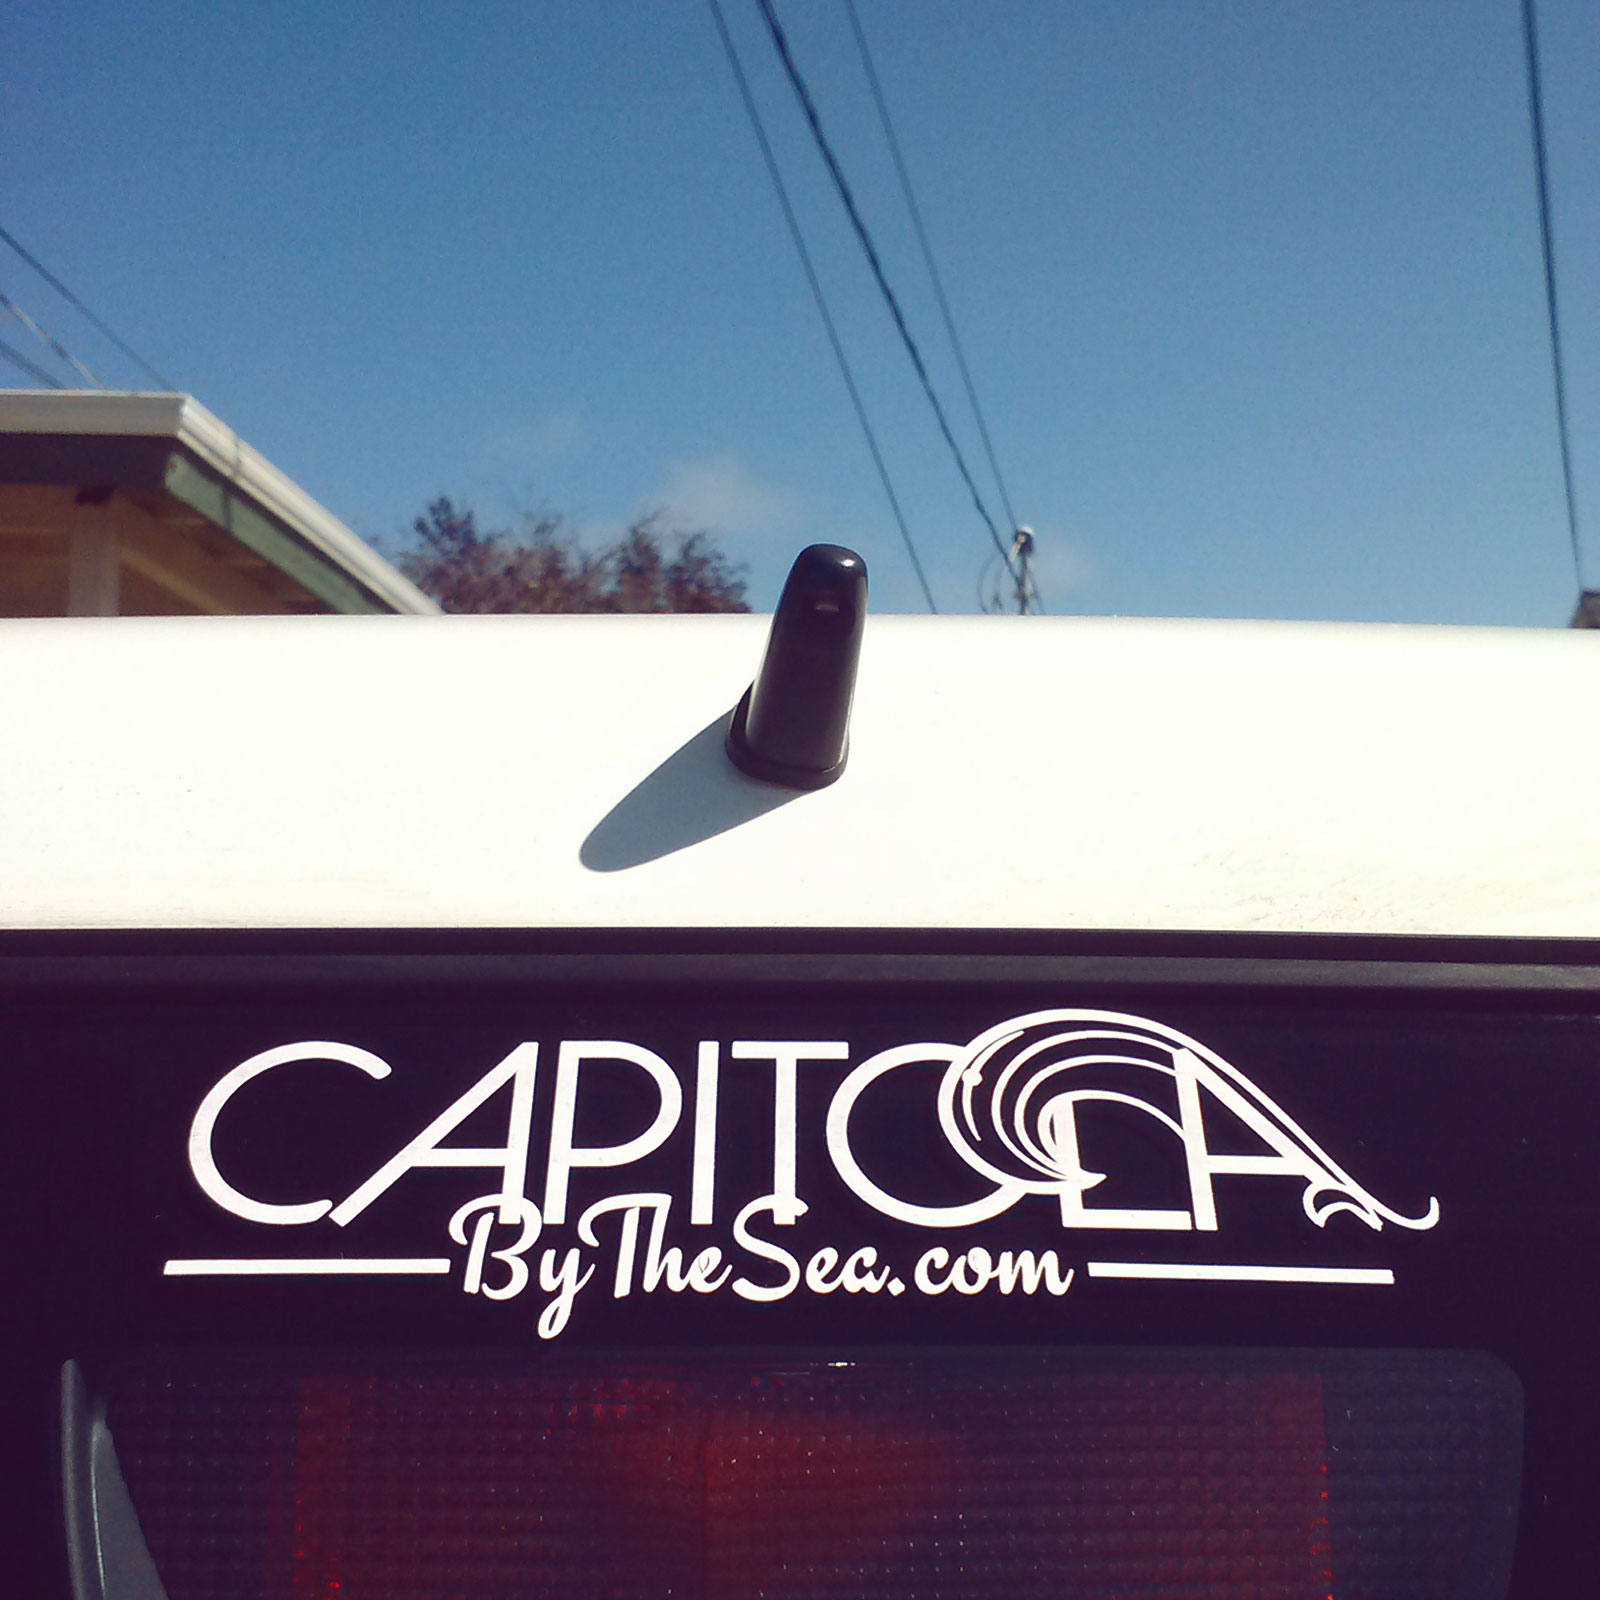 Capitola by the Sea - car decal